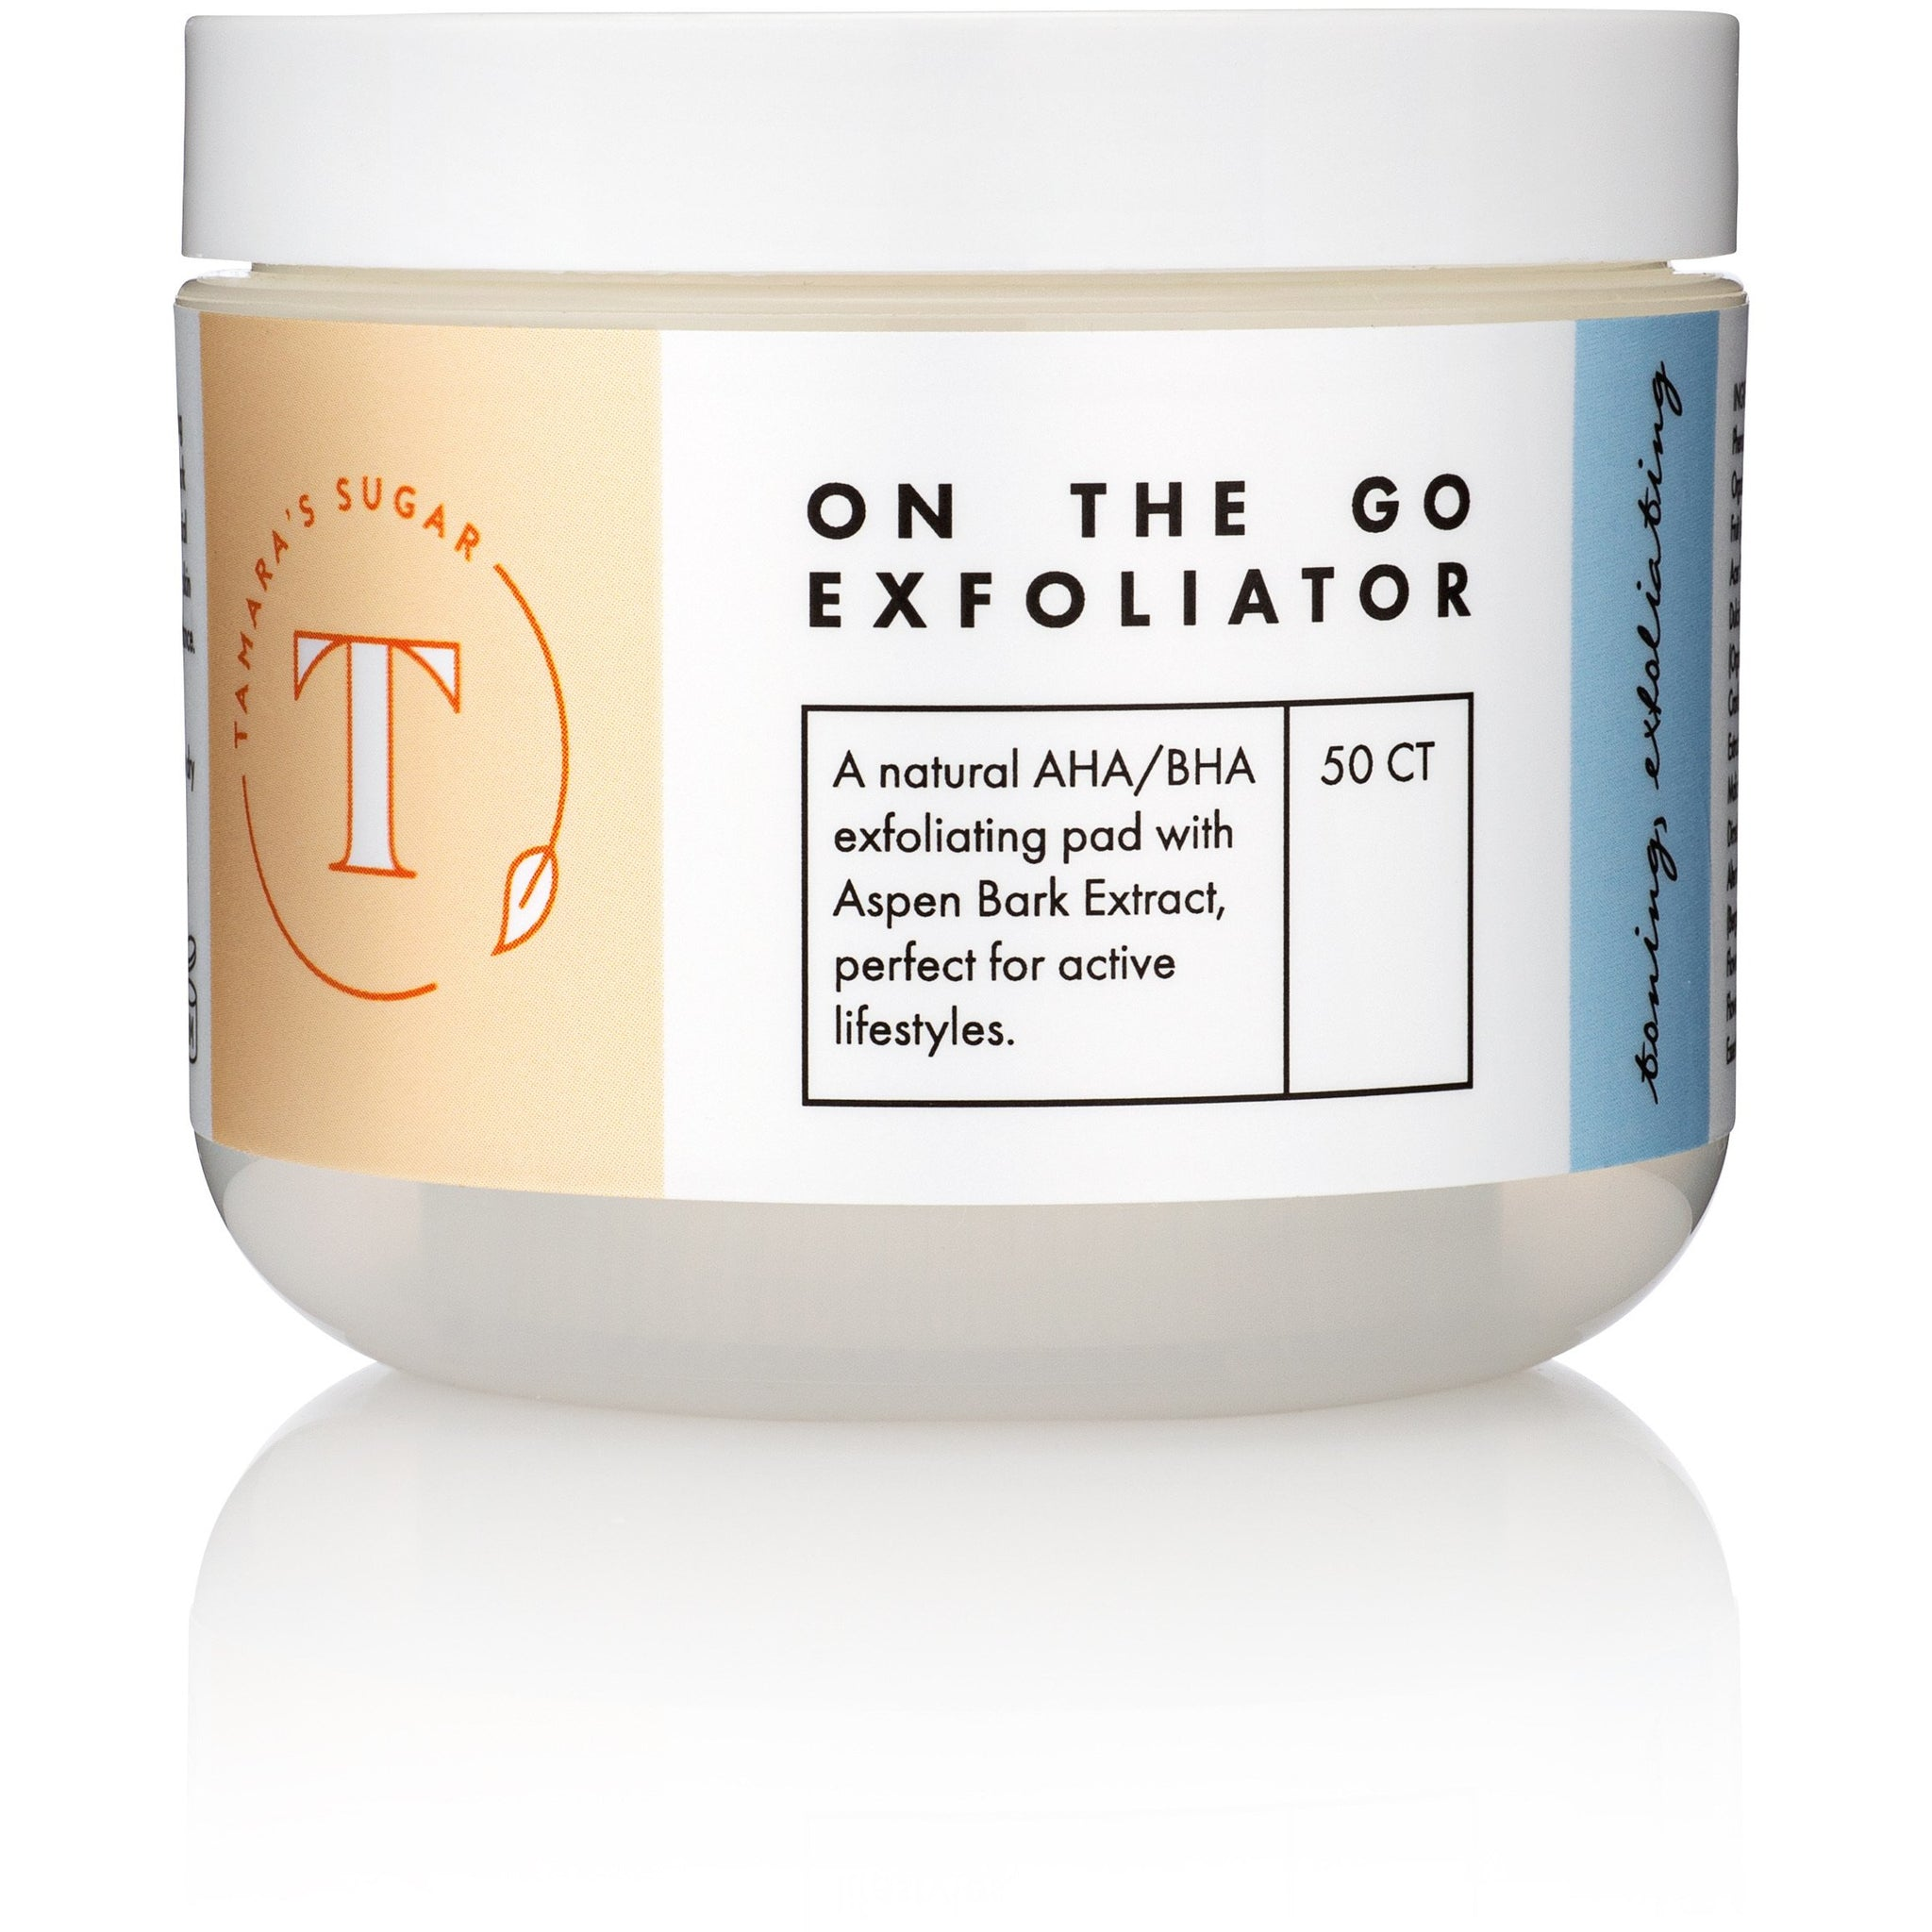 BACK IN STOCK! On the Go Exfoliator